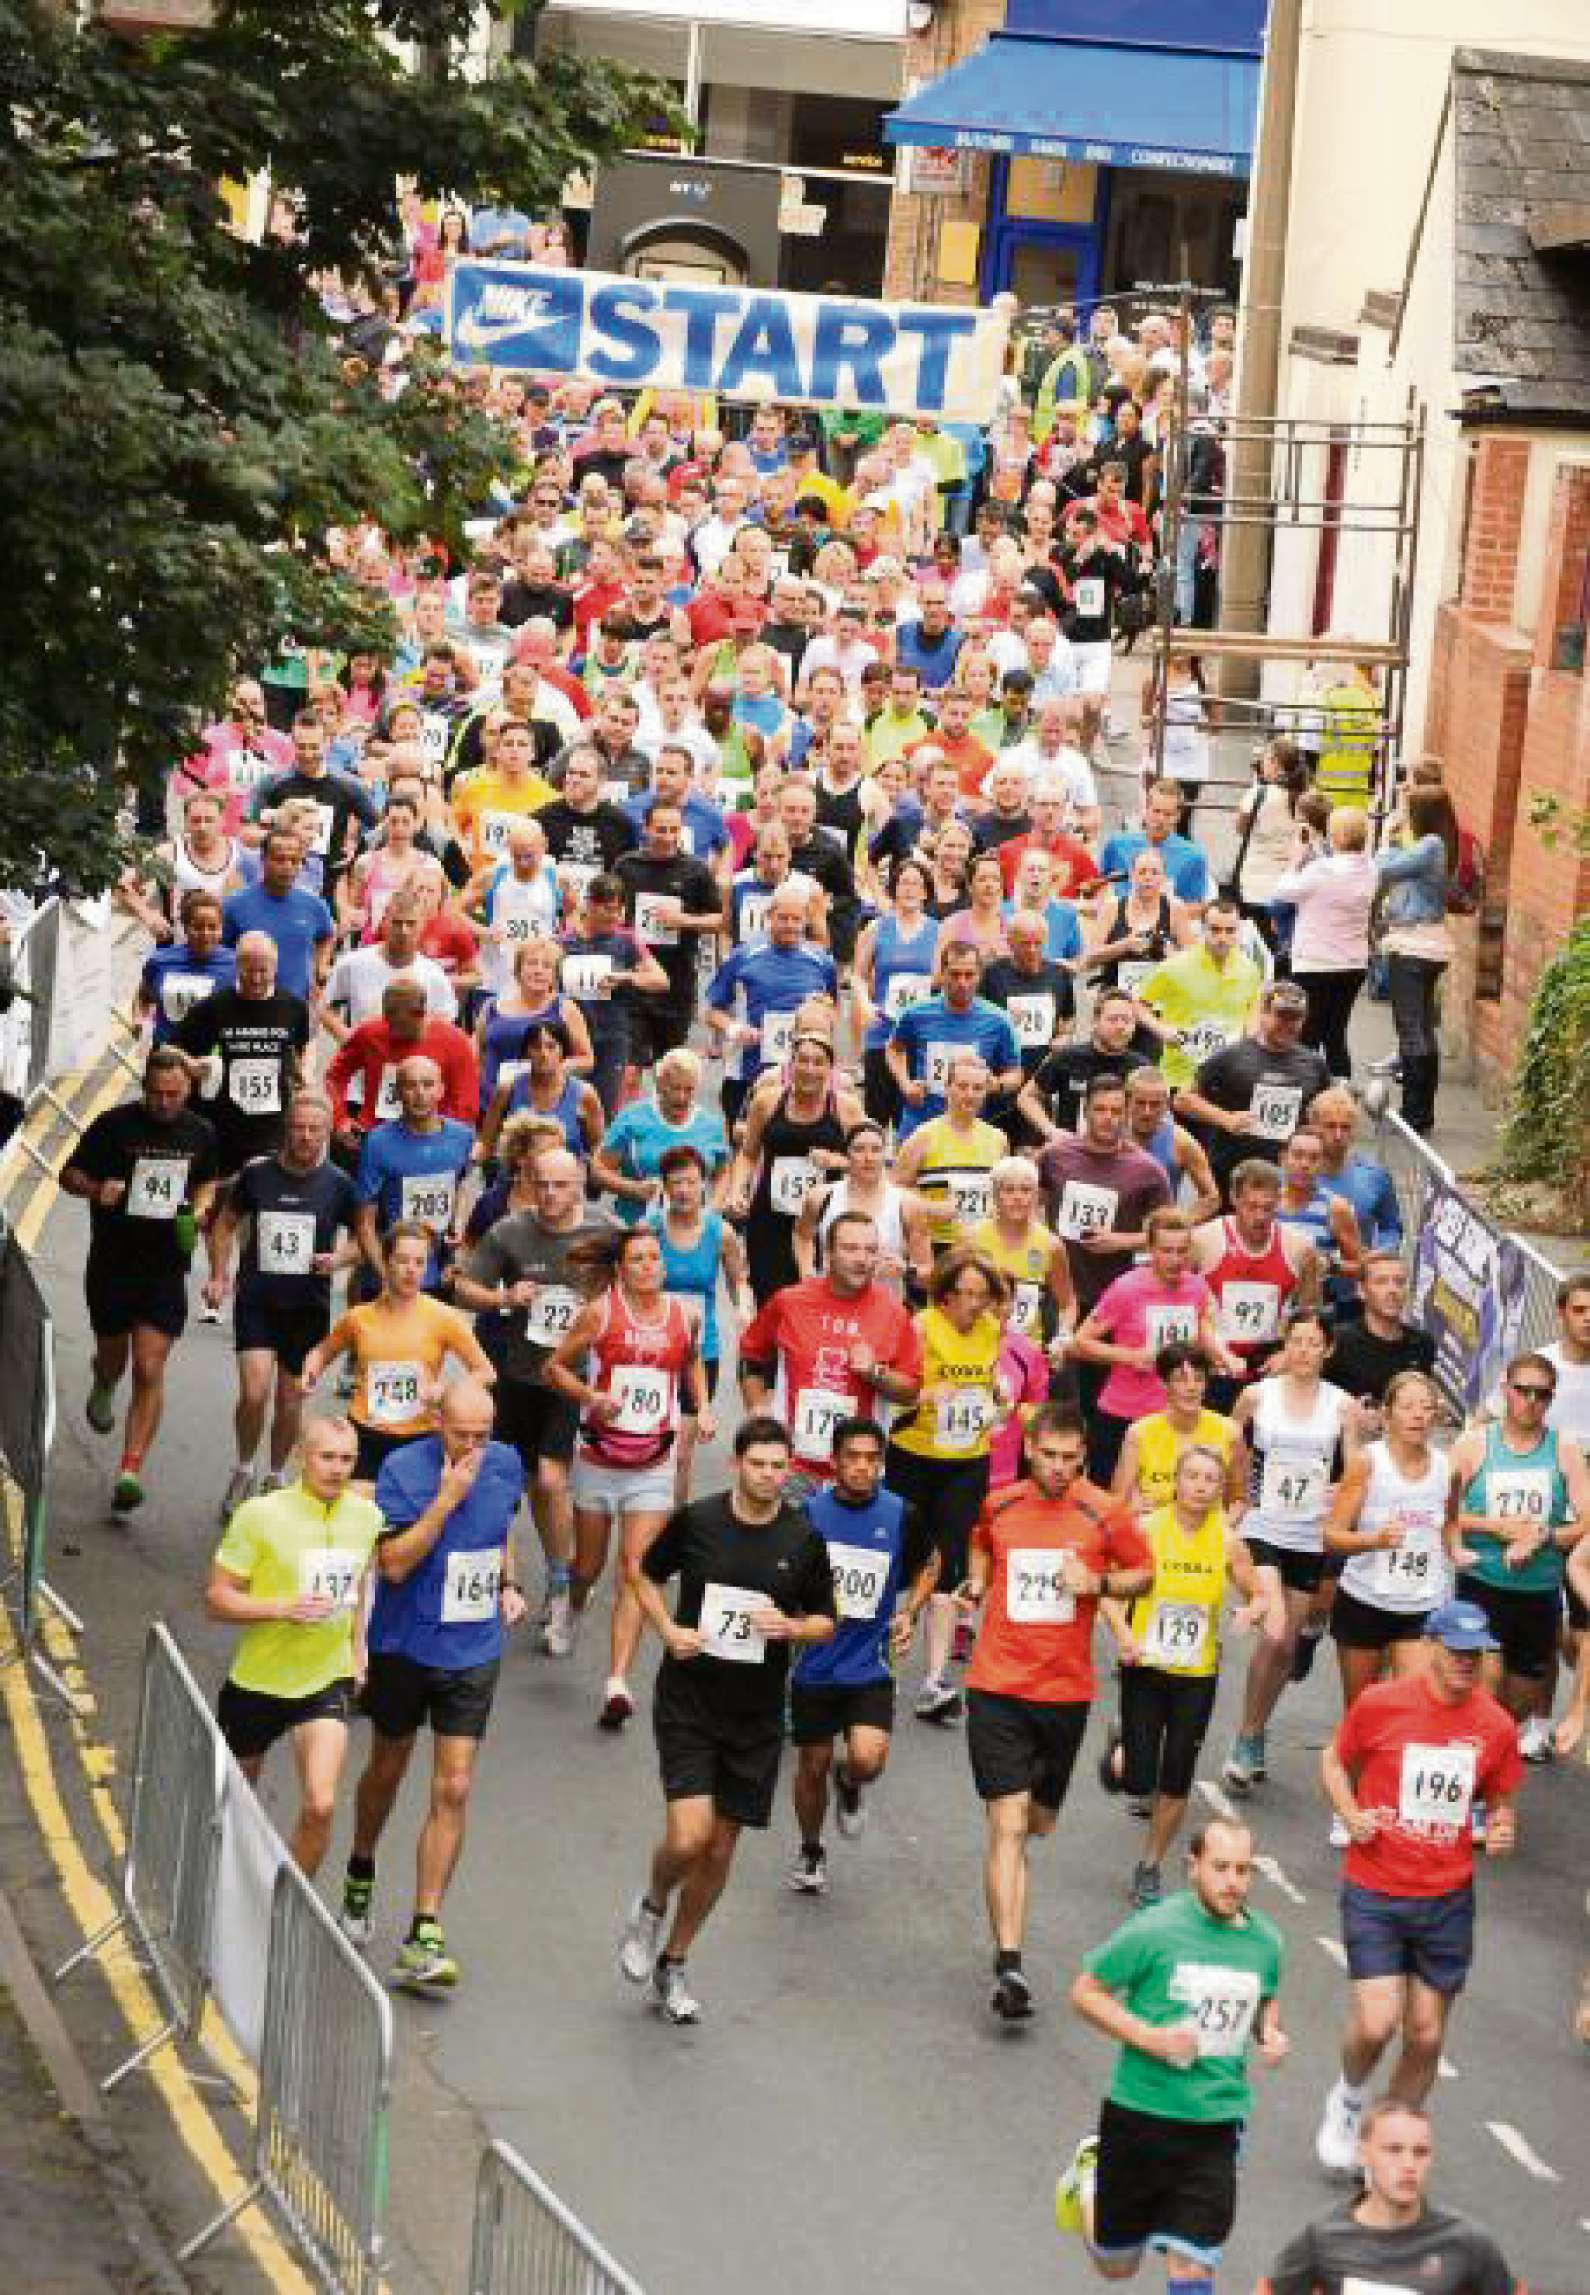 Over £20,000 has been raised for charities by runners of The Black Country Road Run.